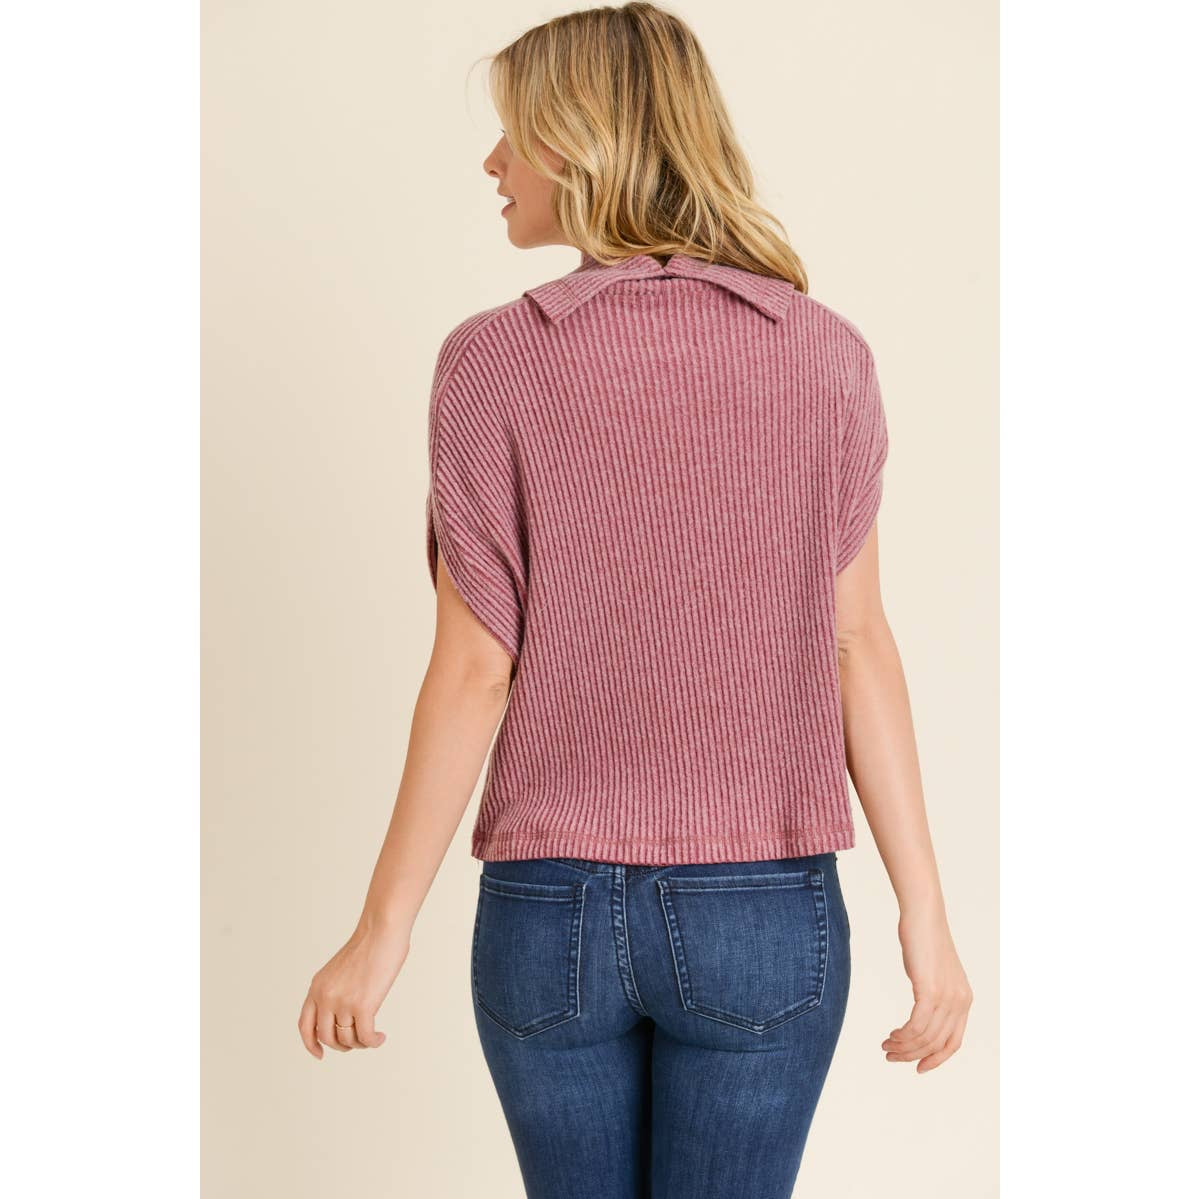 Knit top, old rose